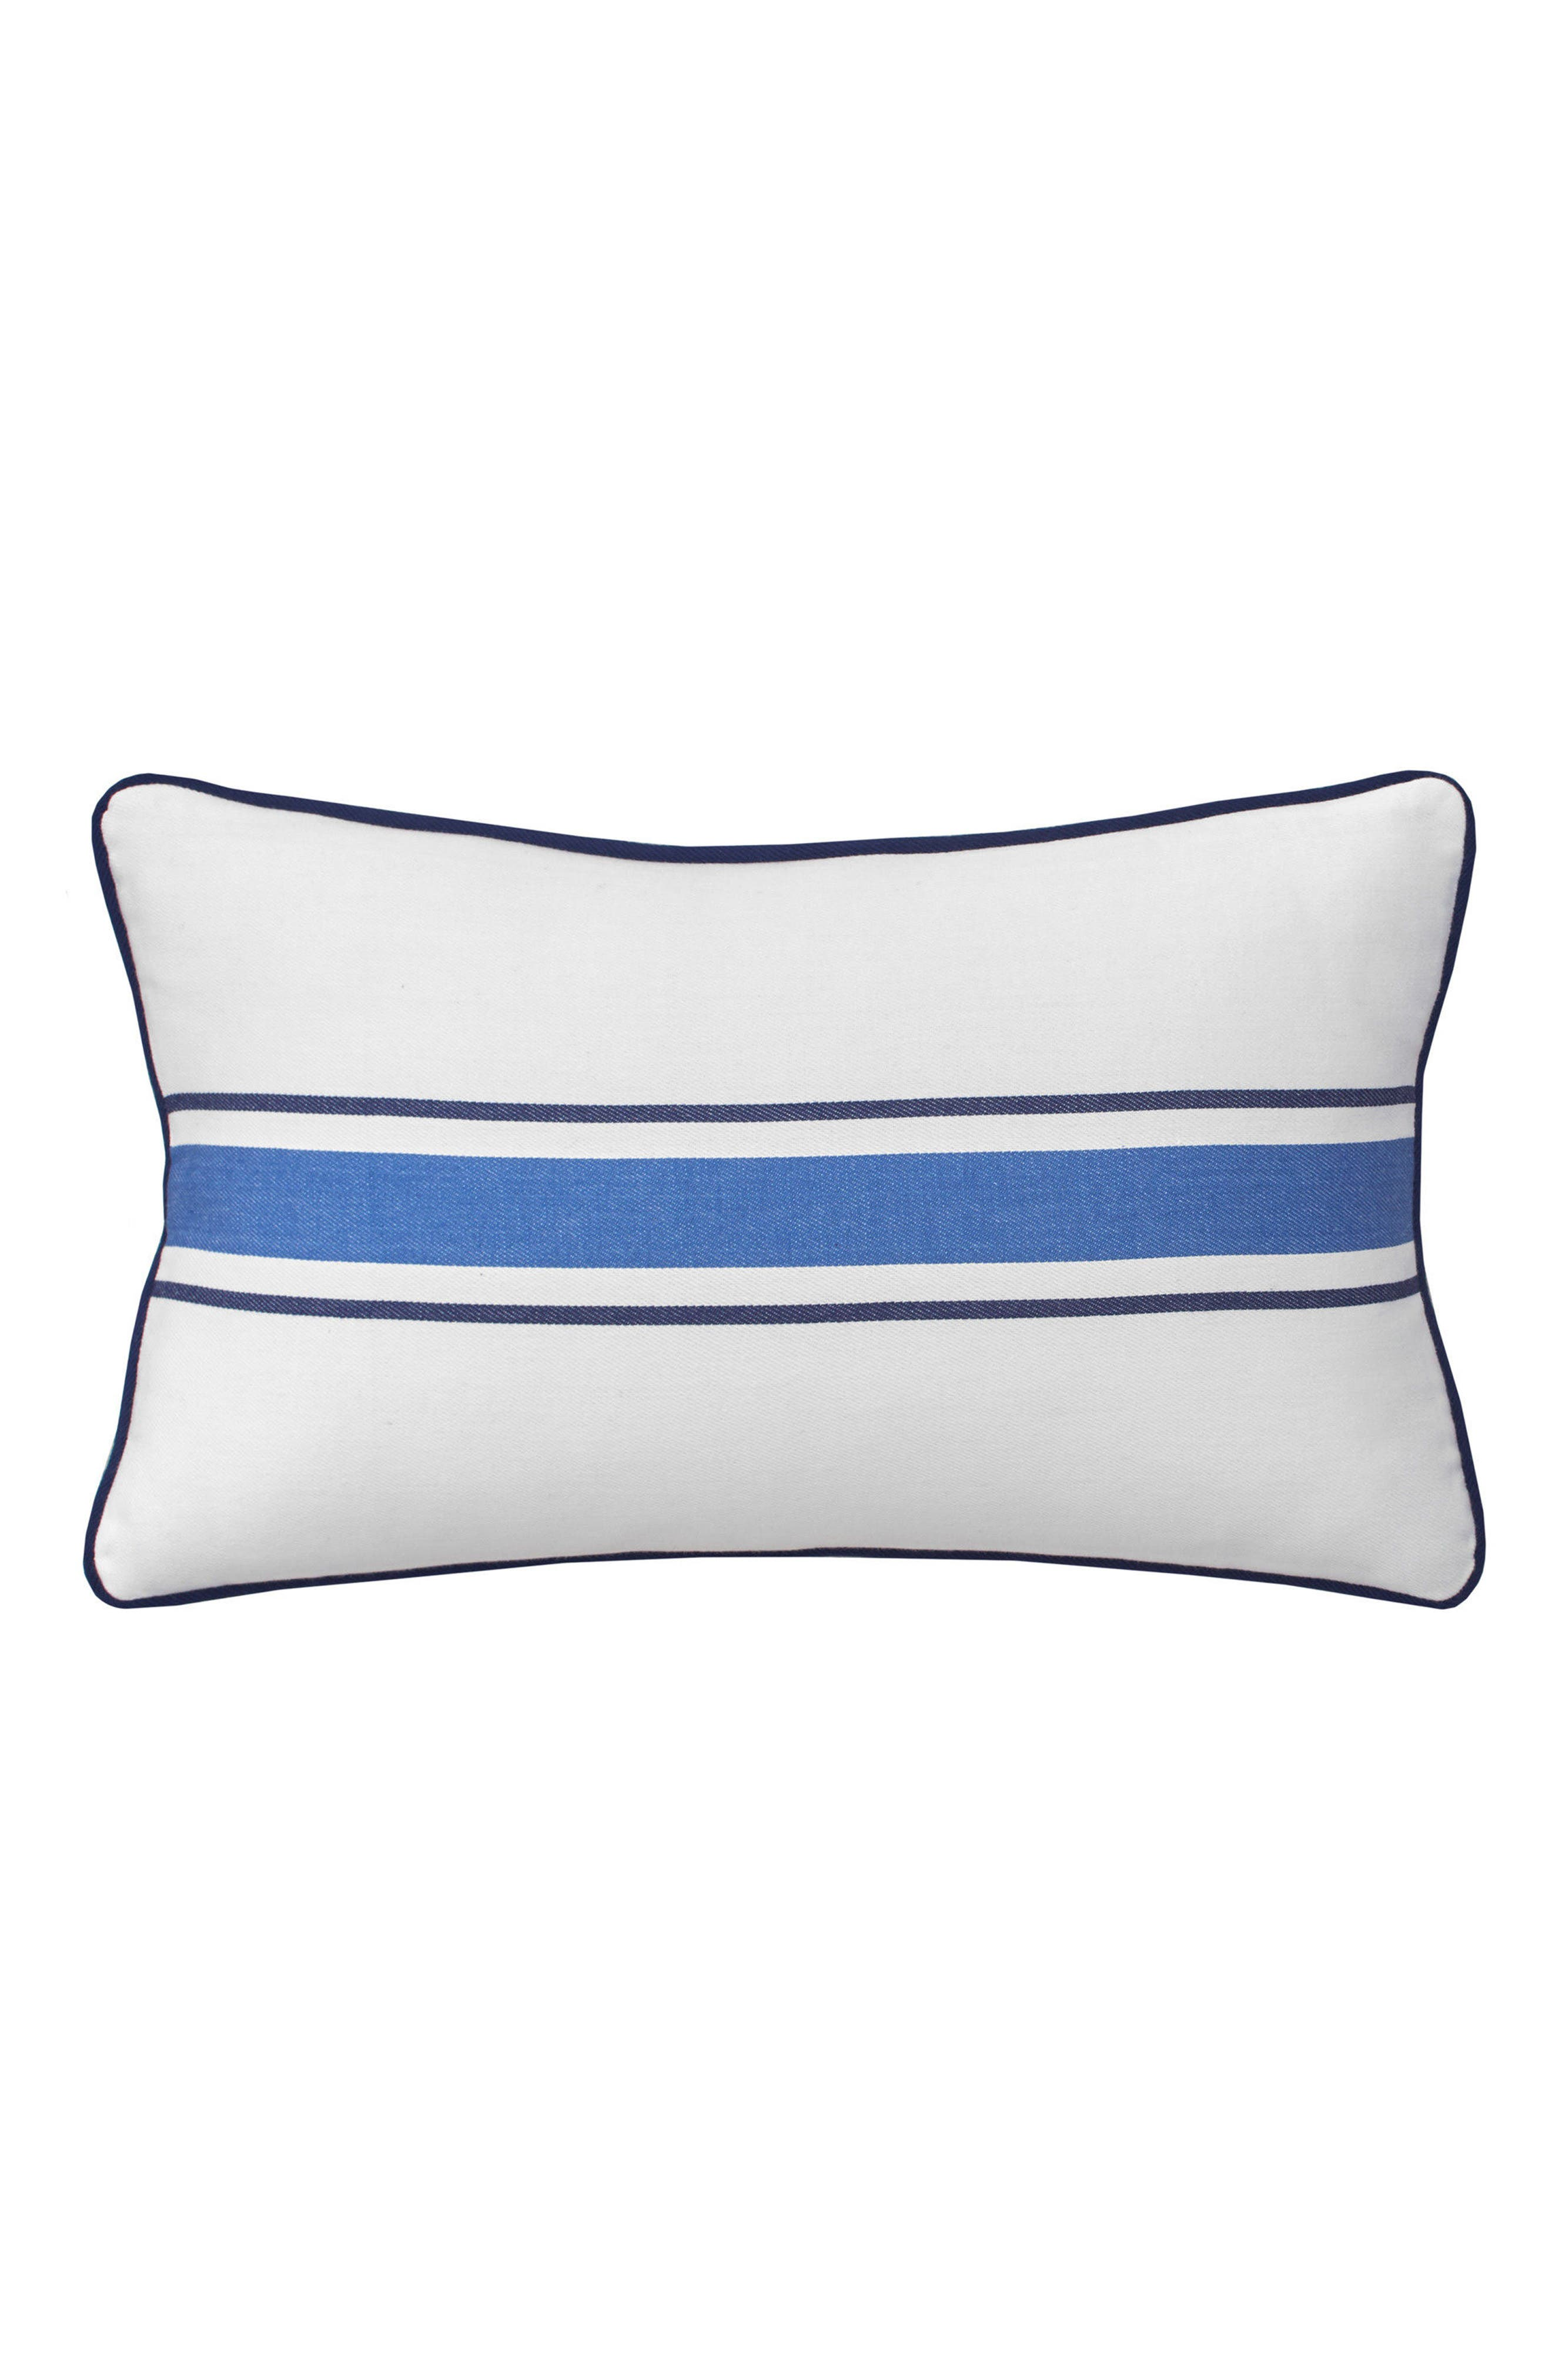 Dock Street Stripe Accent Pillow,                             Main thumbnail 1, color,                             White